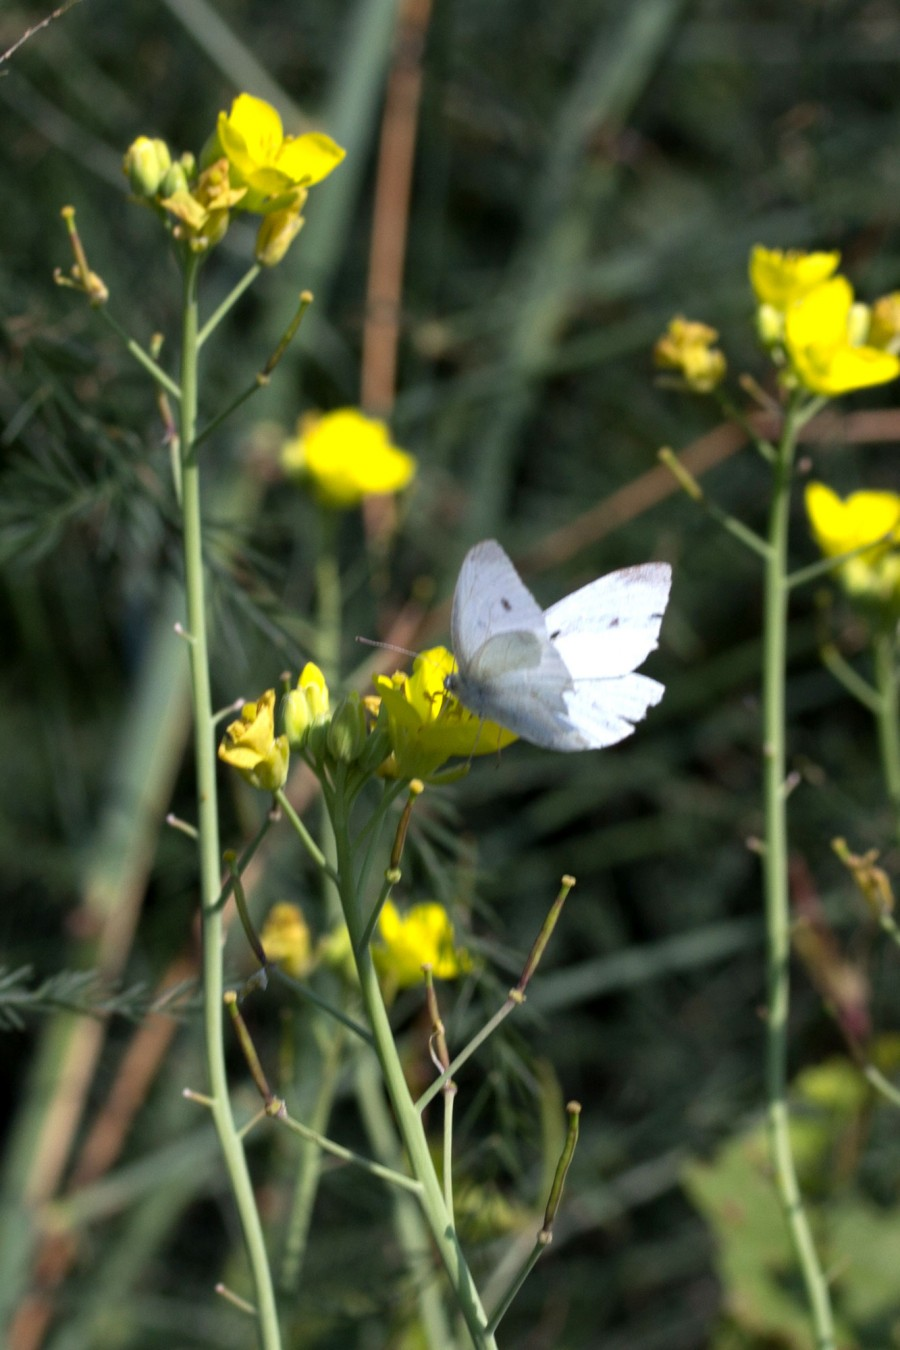 A small white butterfly.